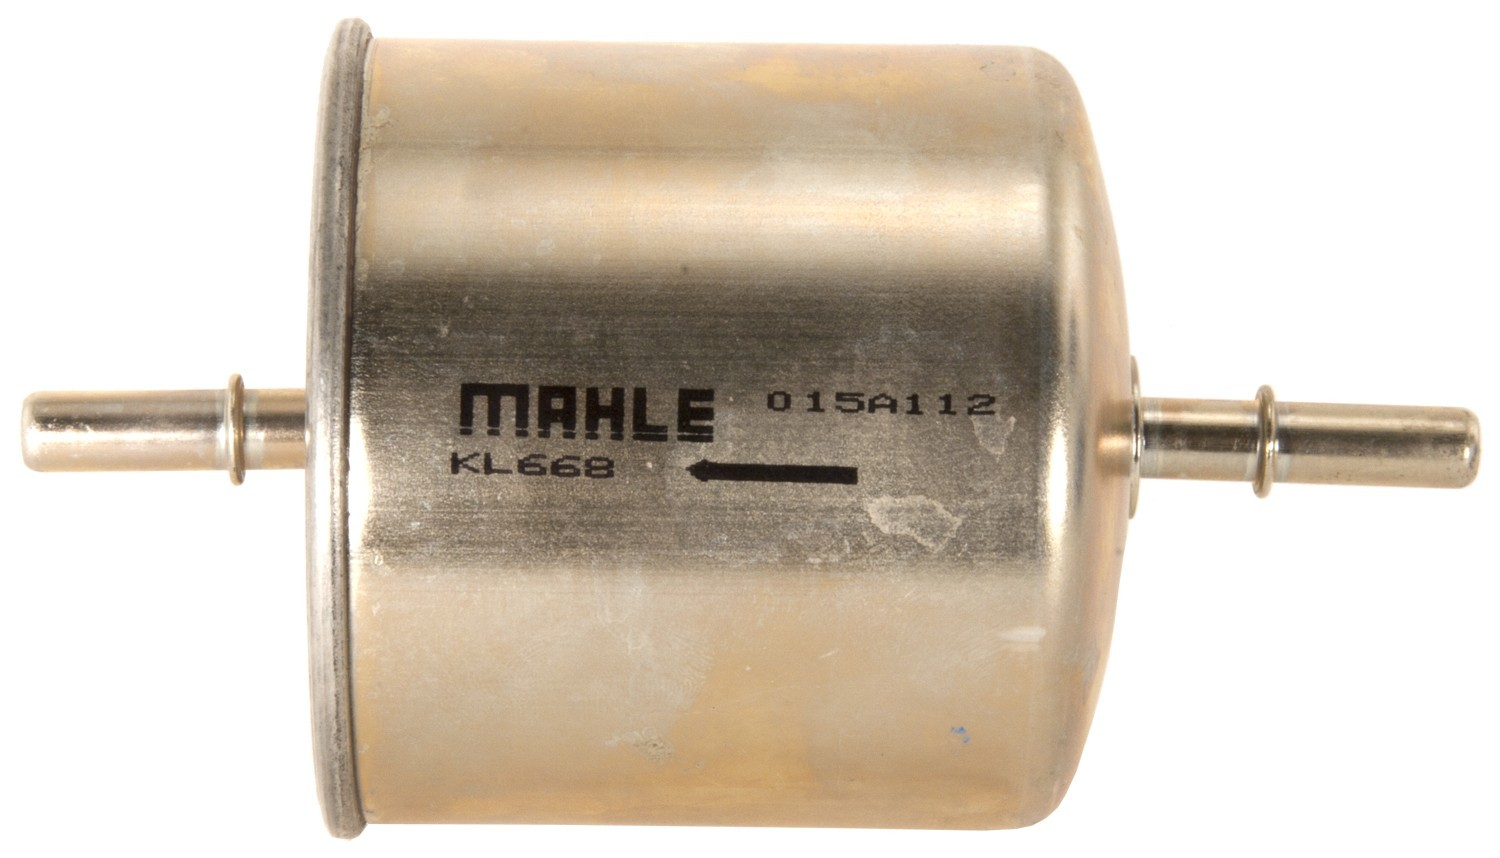 hight resolution of  2003 ford escape fuel filter m1 kl 668